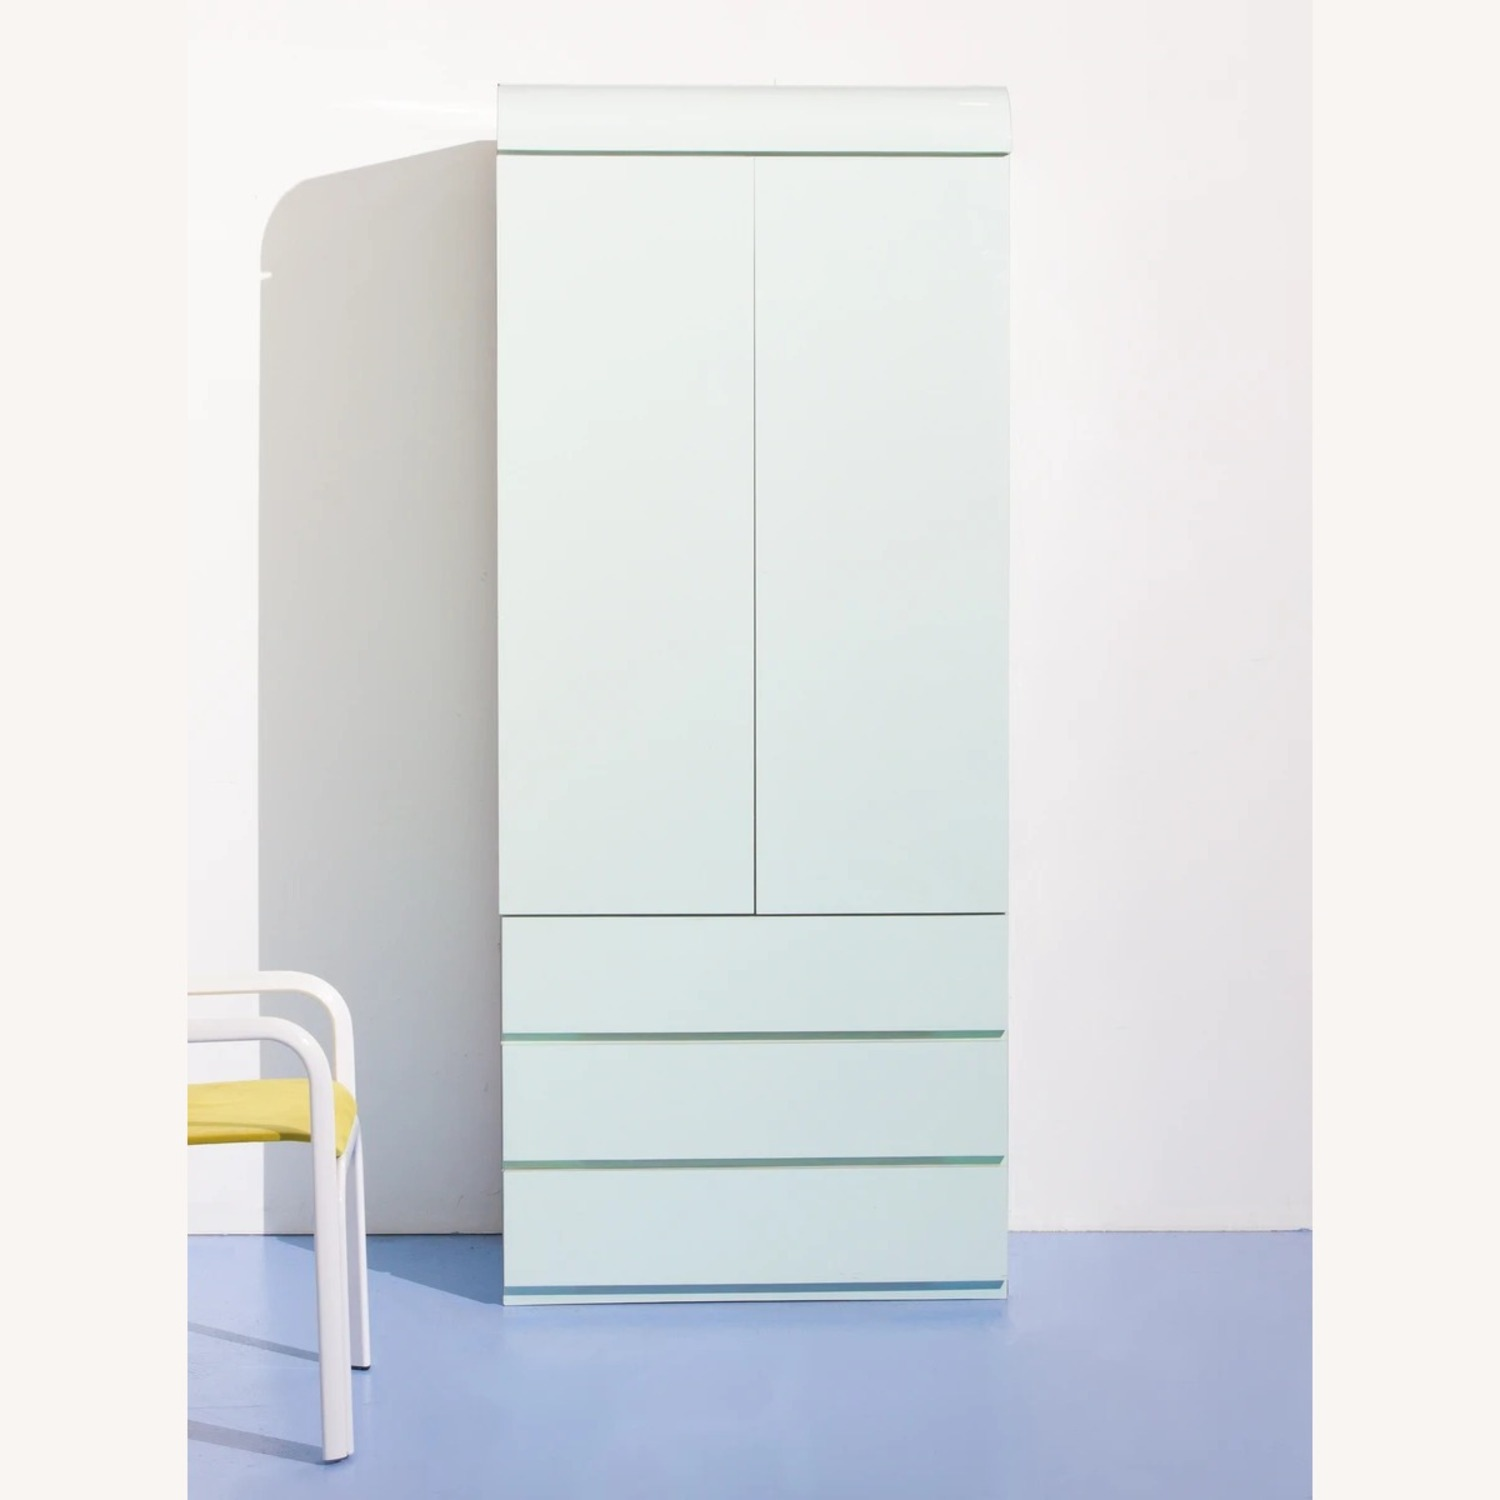 1980s Glossy Mint Laminate Armoire - image-1